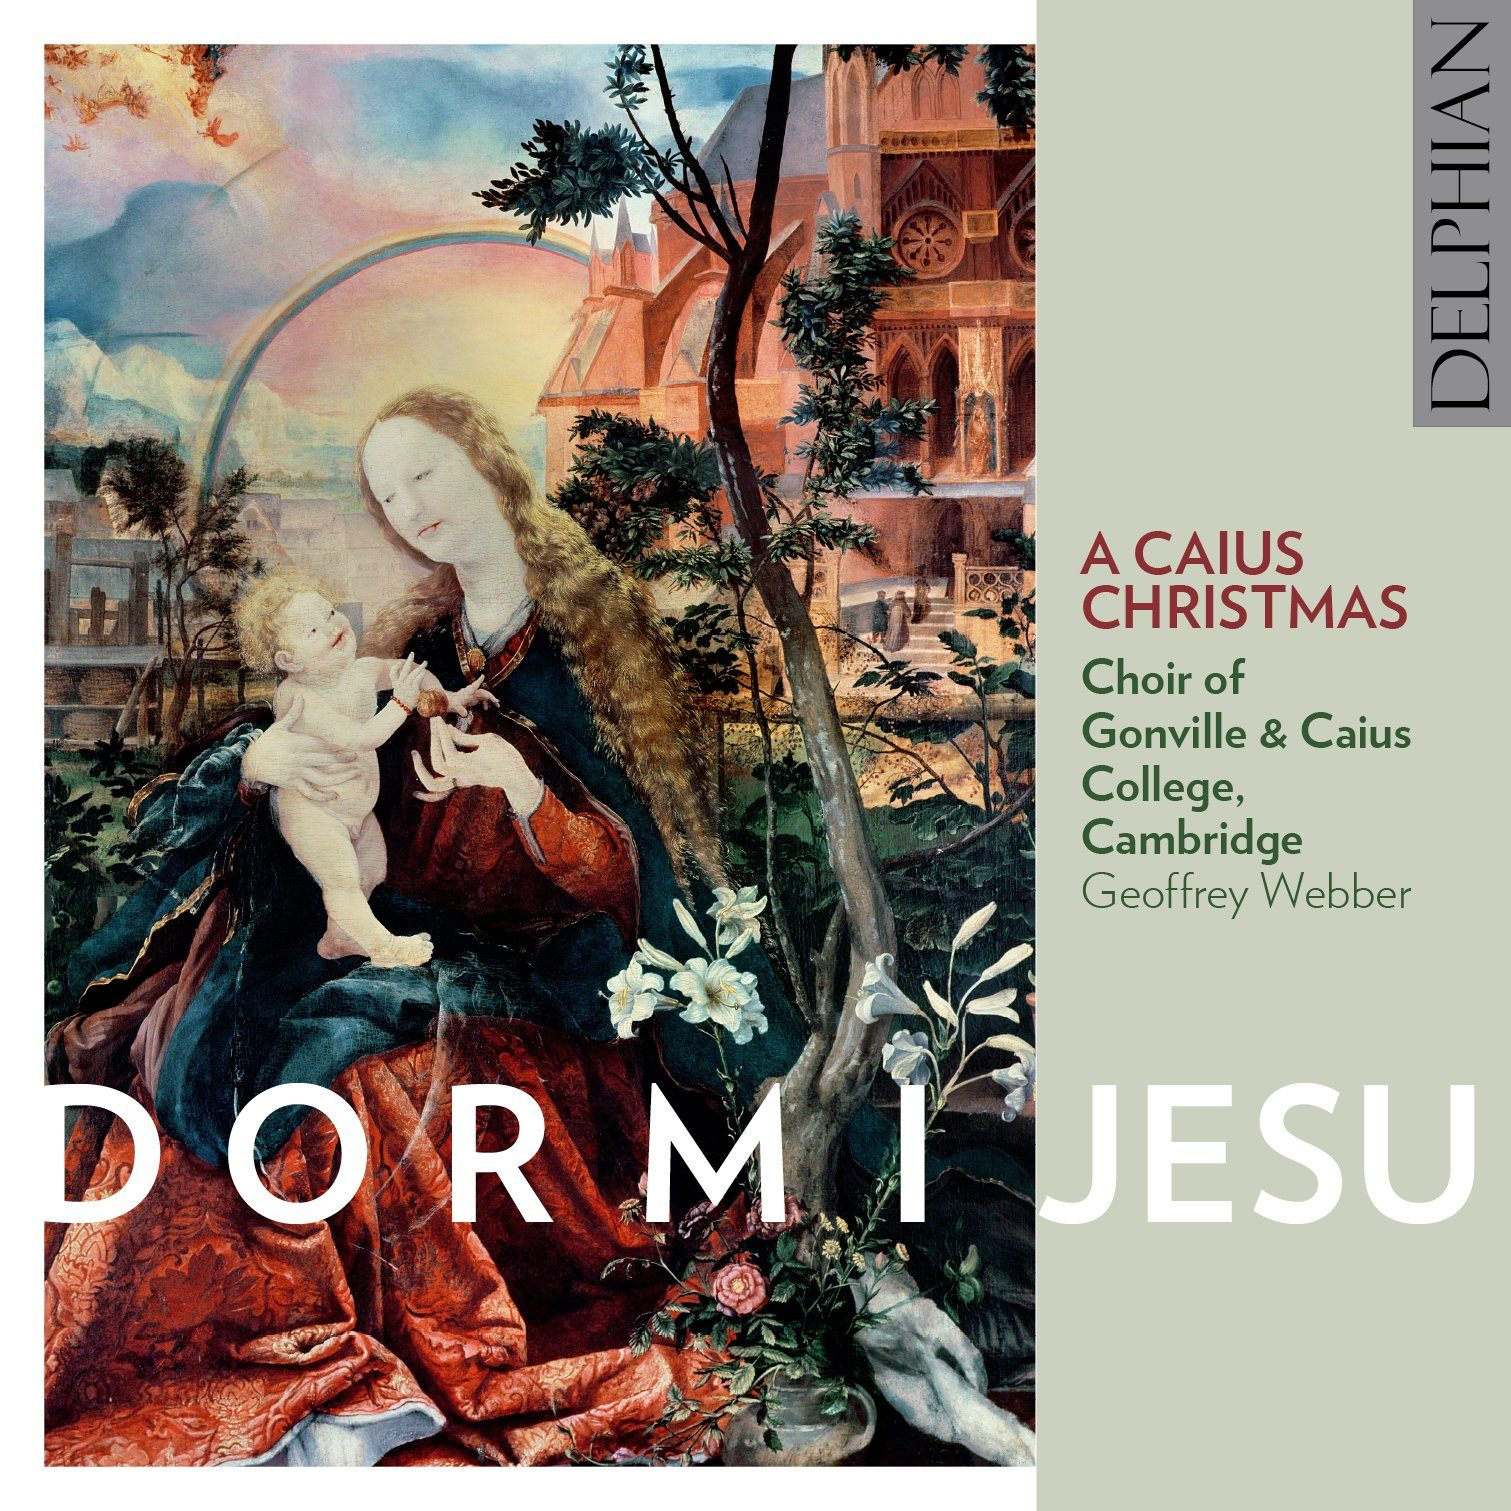 Dormi Jesu: A Caius Christmas CD Delphian Records